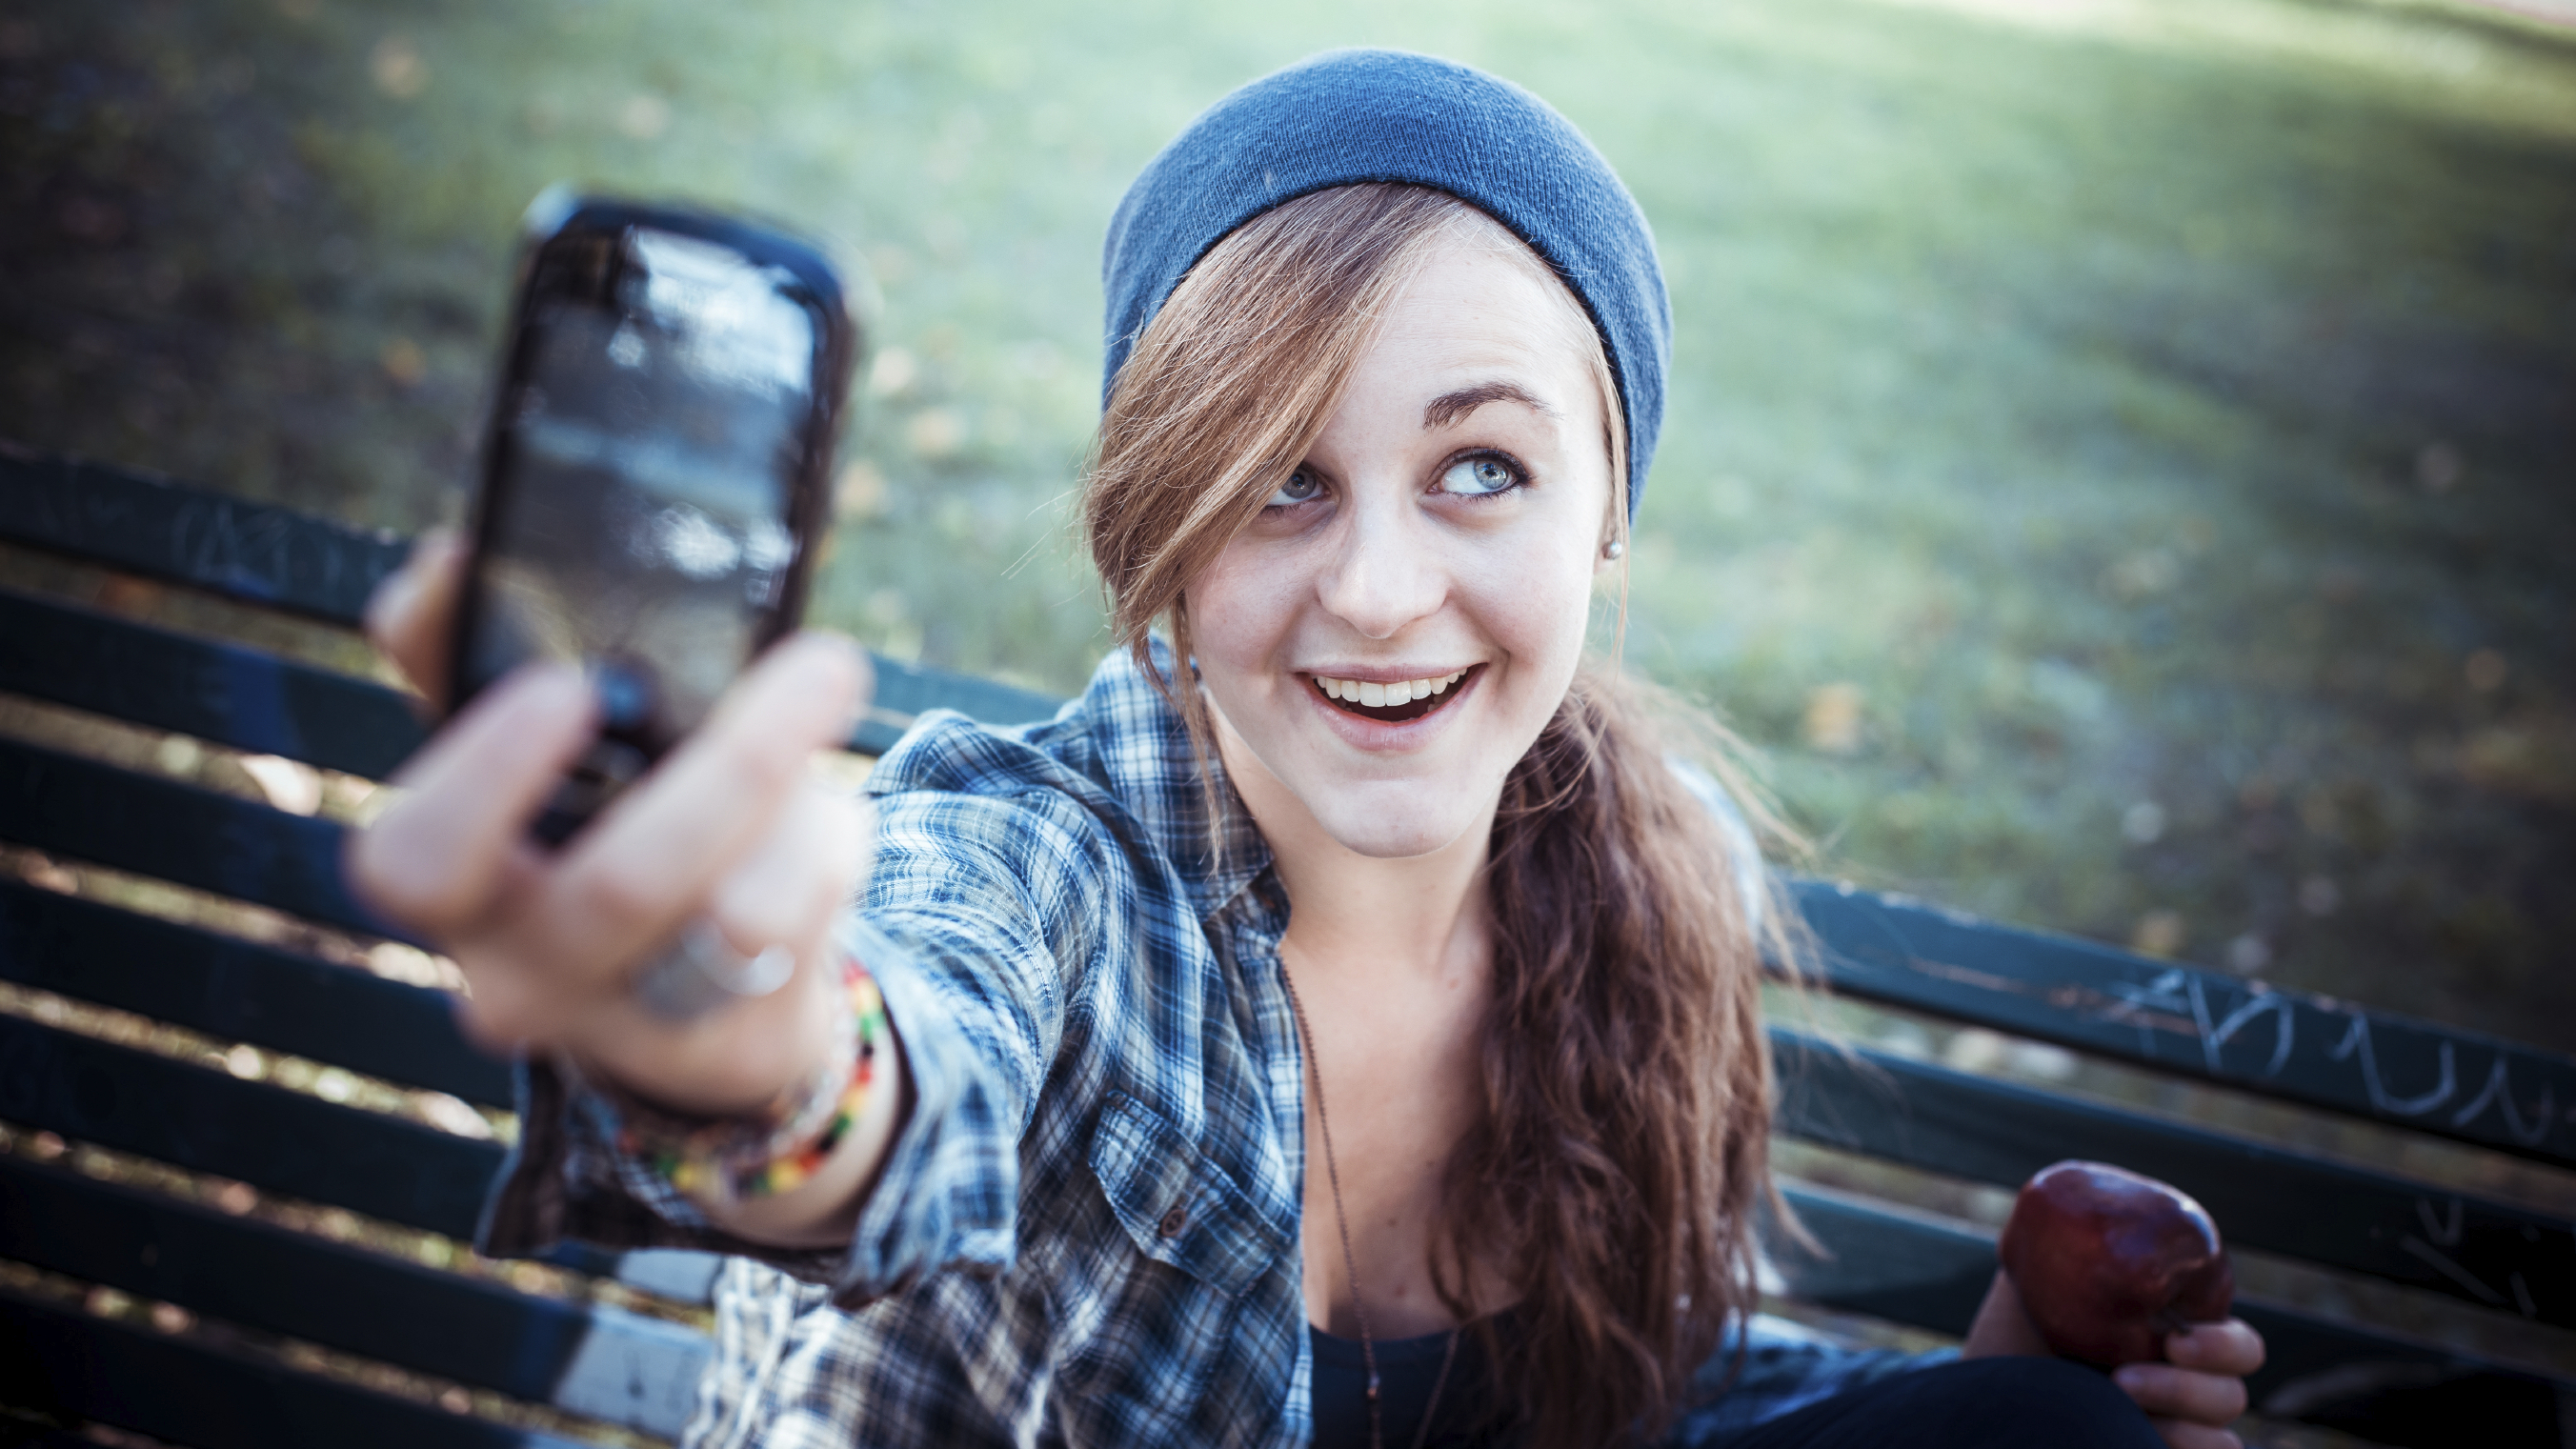 Getting Some 'Me' Time: Why Millennials Are So Individualistic